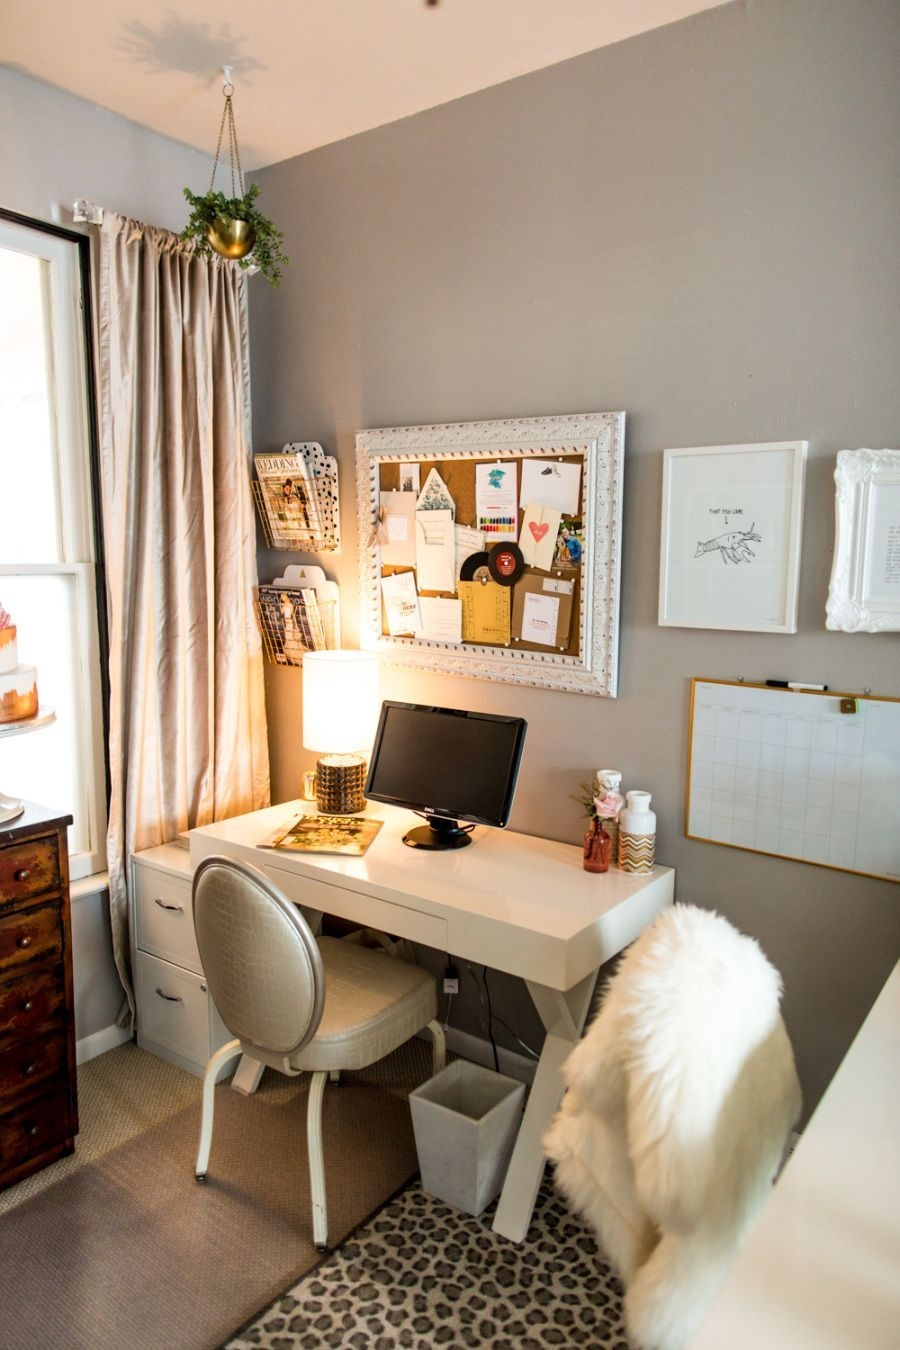 How To Live Large In A Small Office Space  Small Bedroom Decor Small Space Office